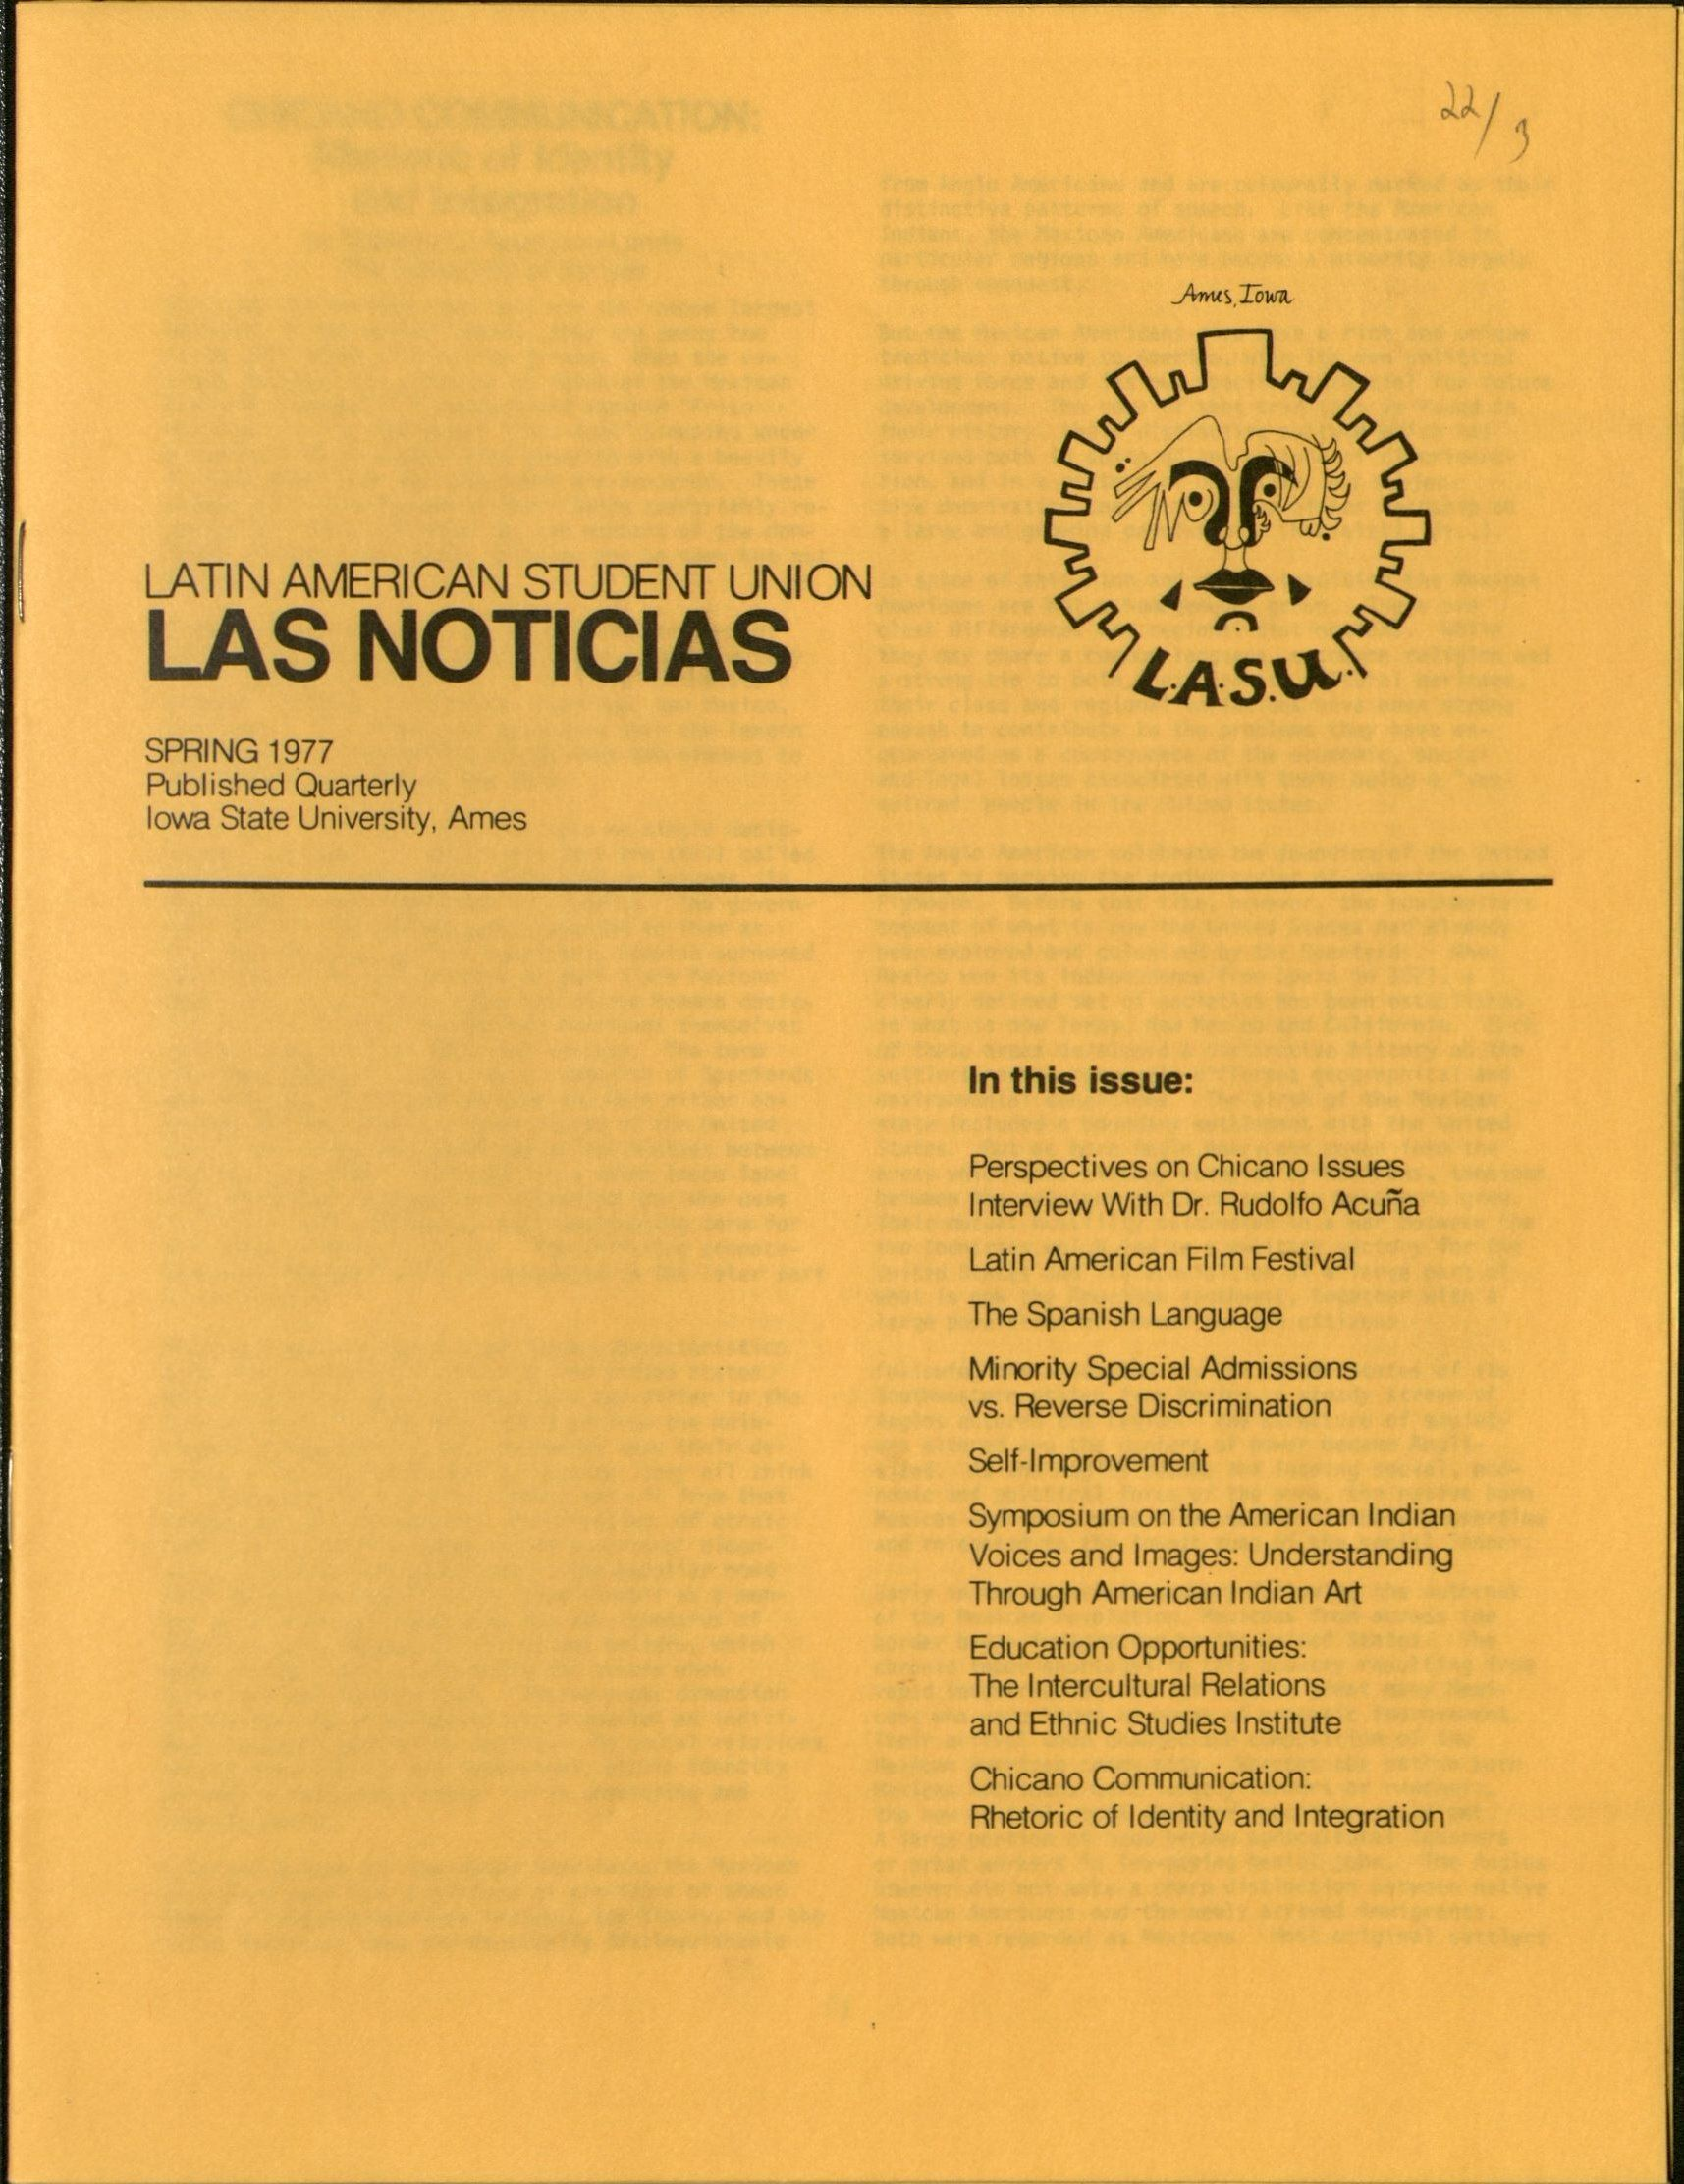 Excerpts from a publication titled Las Noticias from spring 1977